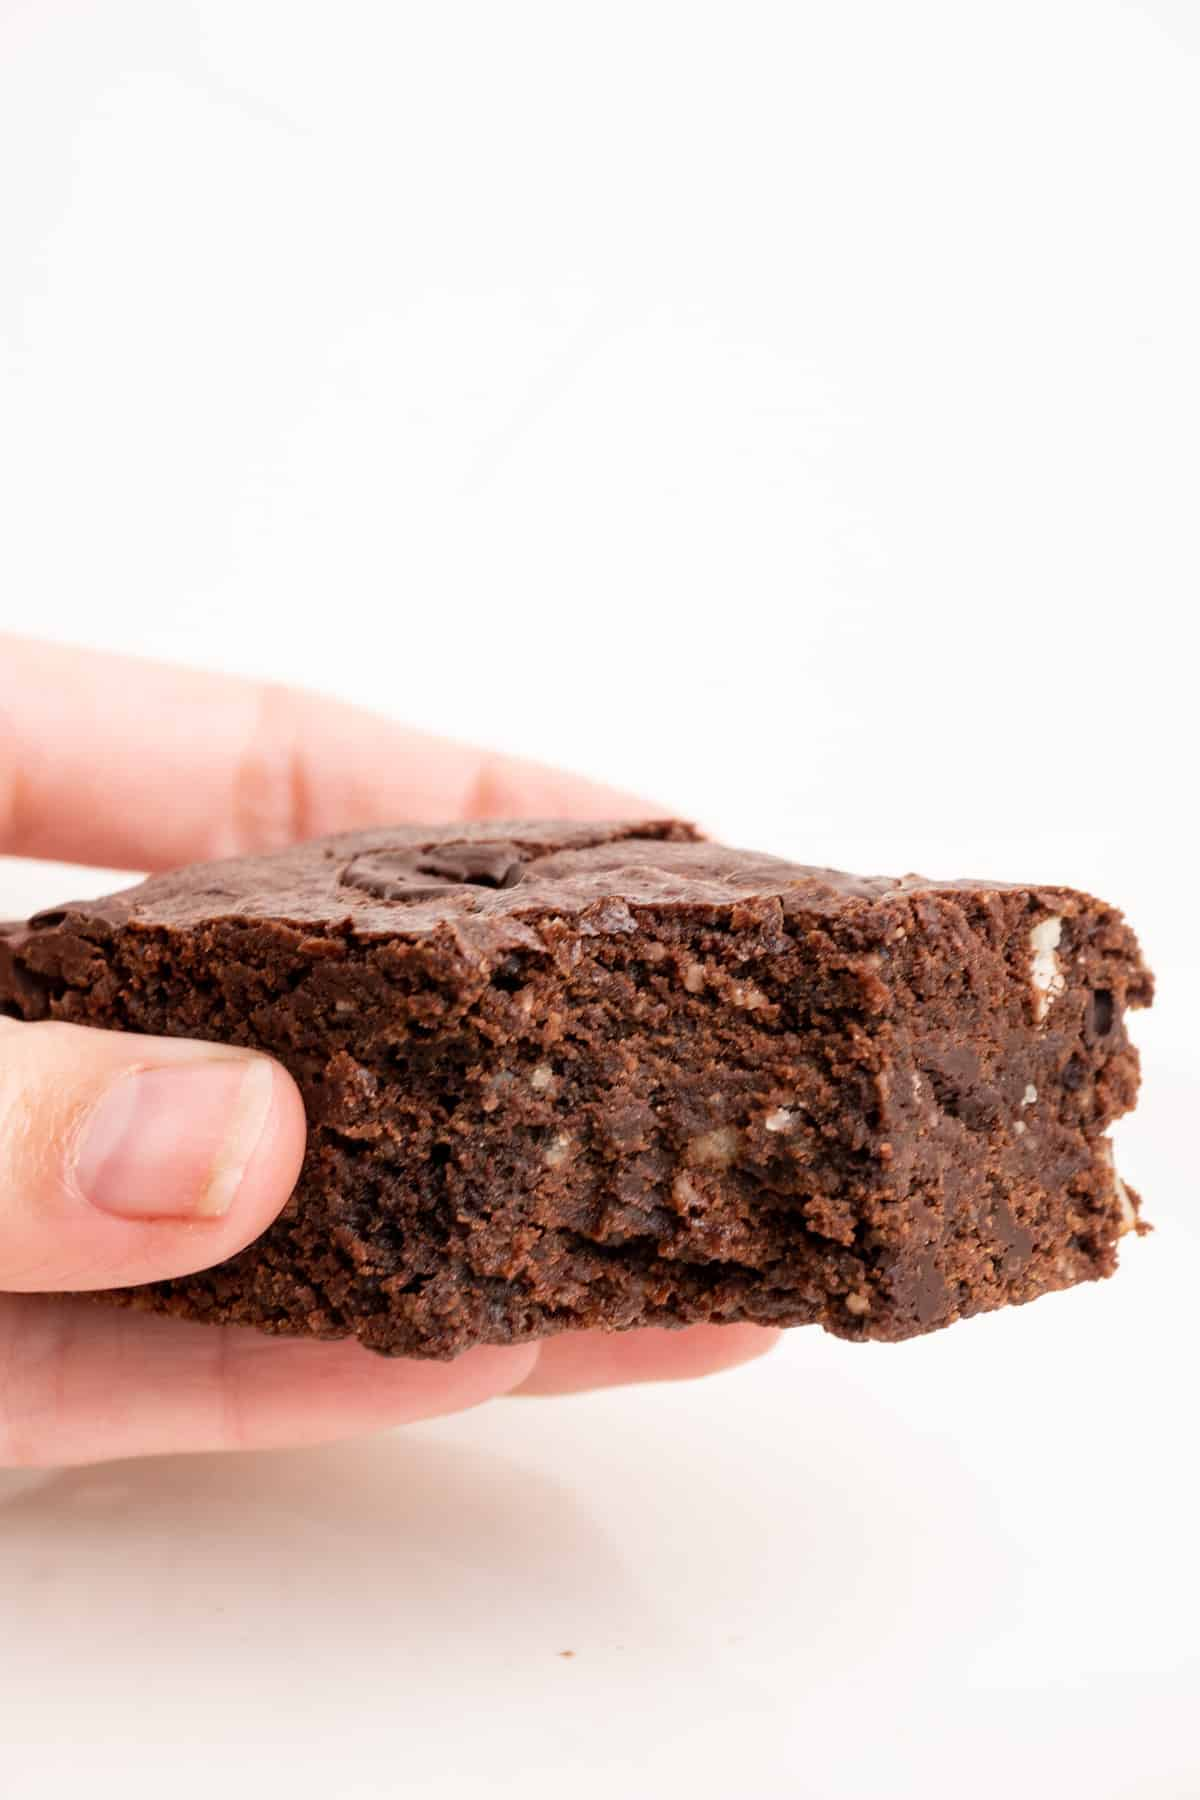 A hand holds a piece of brownie with a bite out of it.